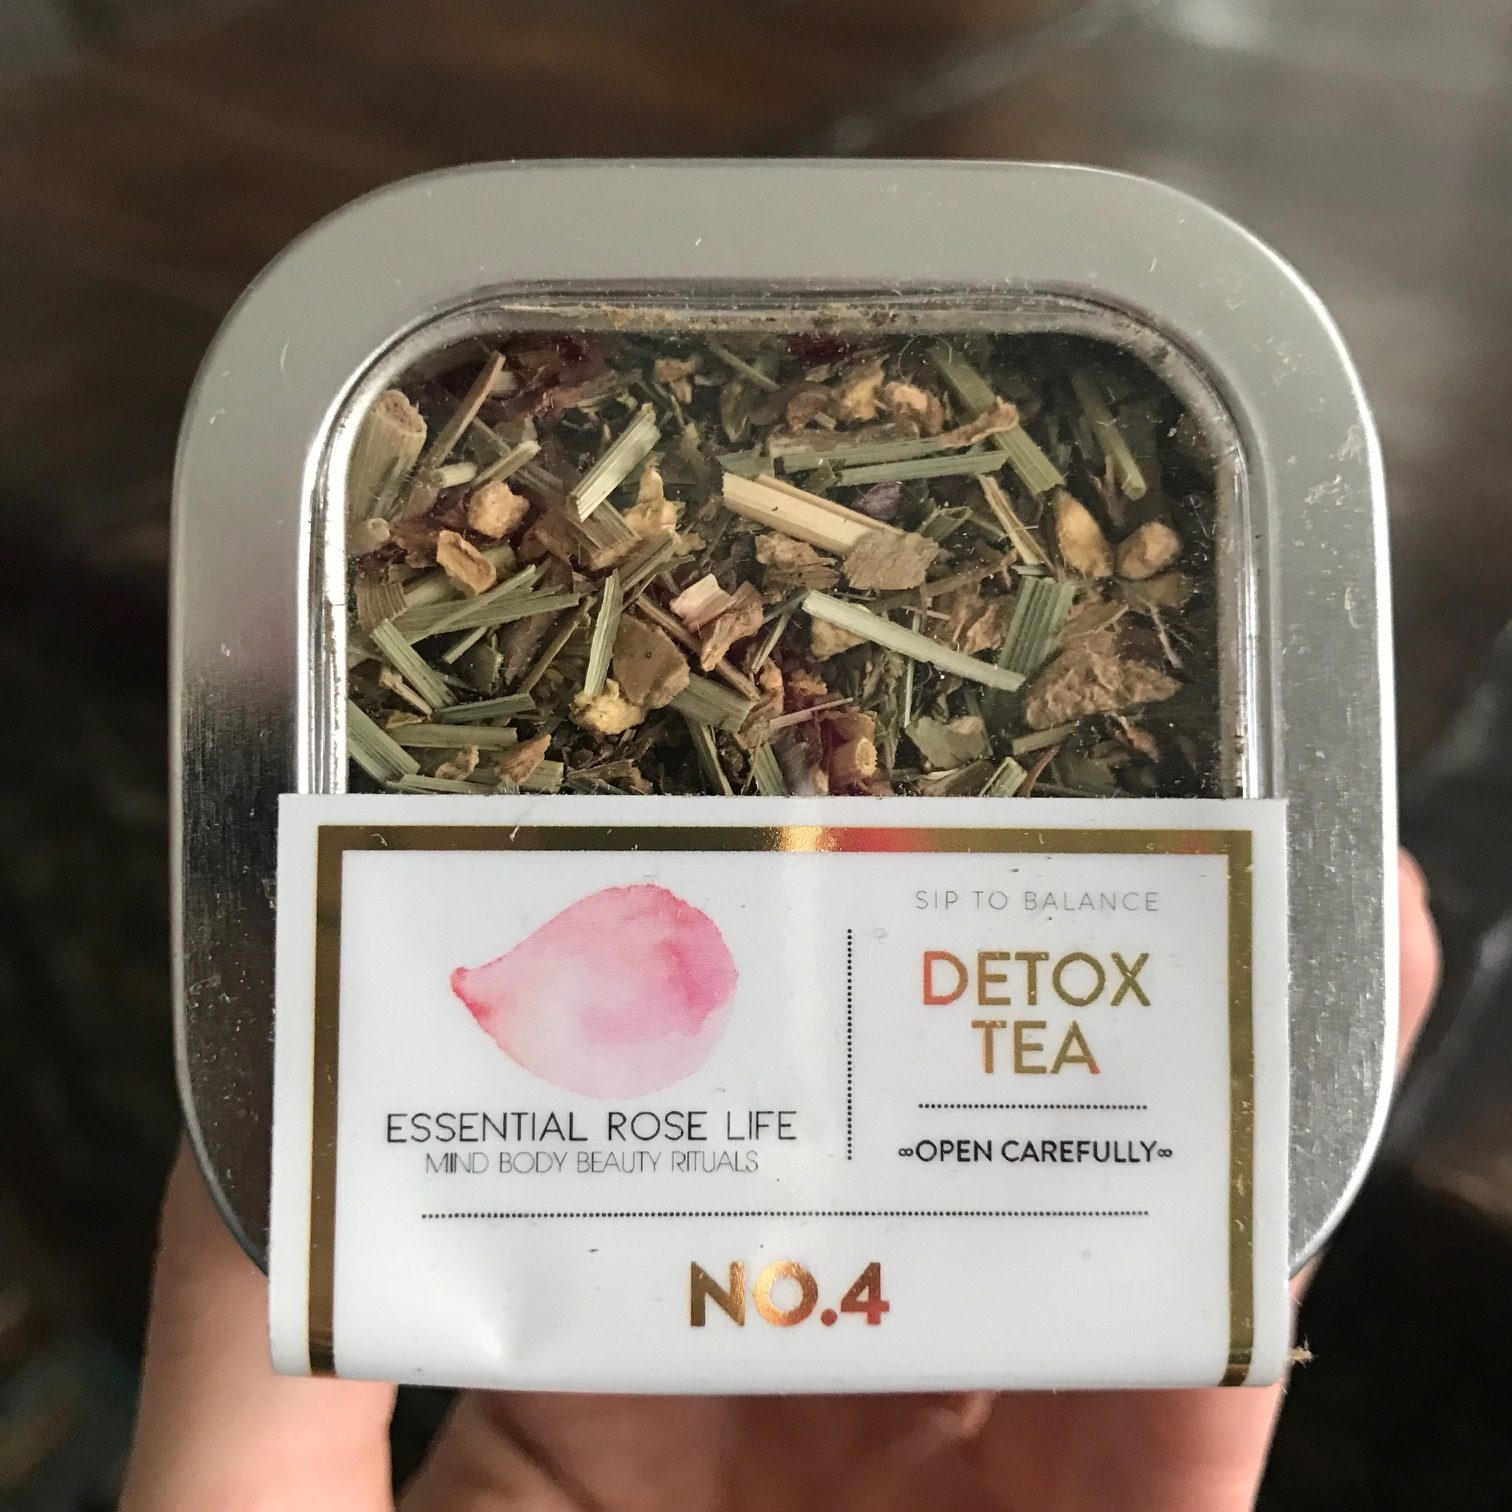 Essential Rose Life Detox Tea